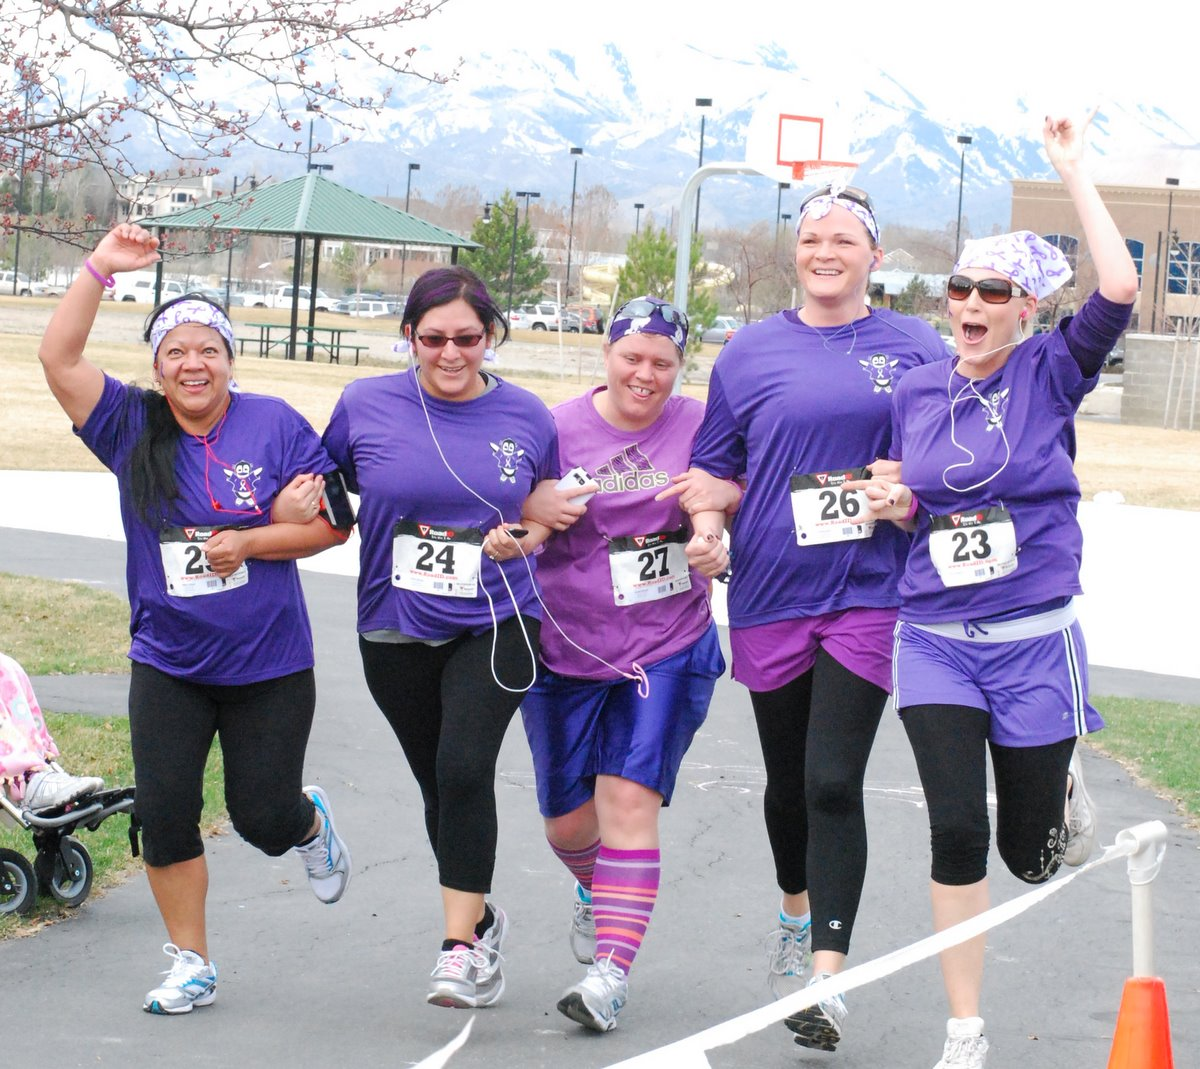 Bettina, Sandra, Charity, Christine and Mindy approach the finish line